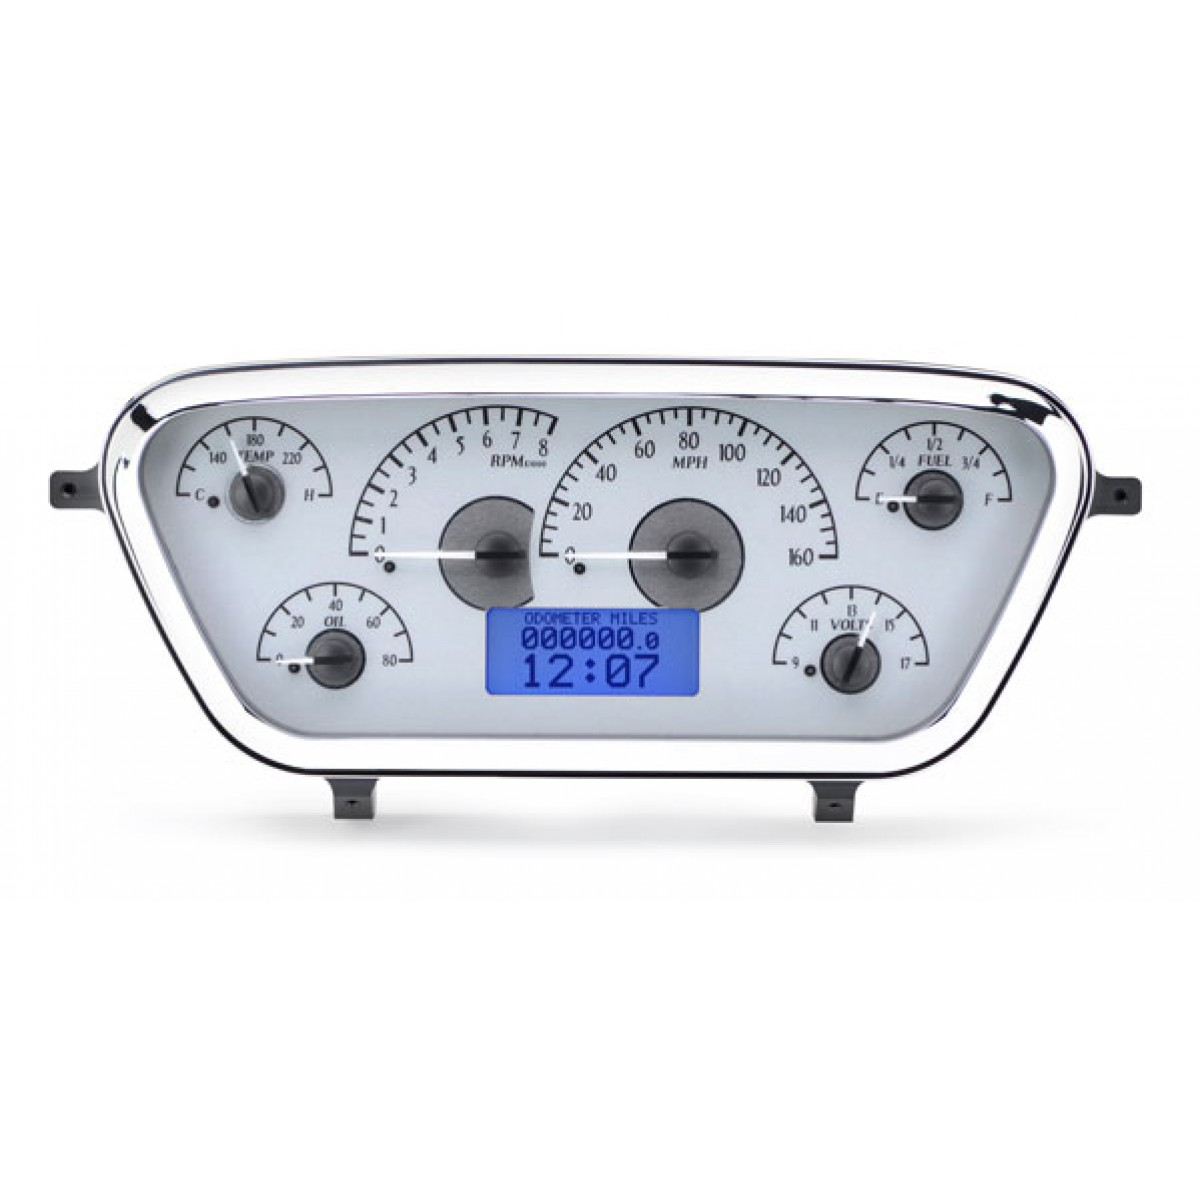 hight resolution of 1953 1955 ford pickup vhx gauge instruments dakota digital vhx 53f pu